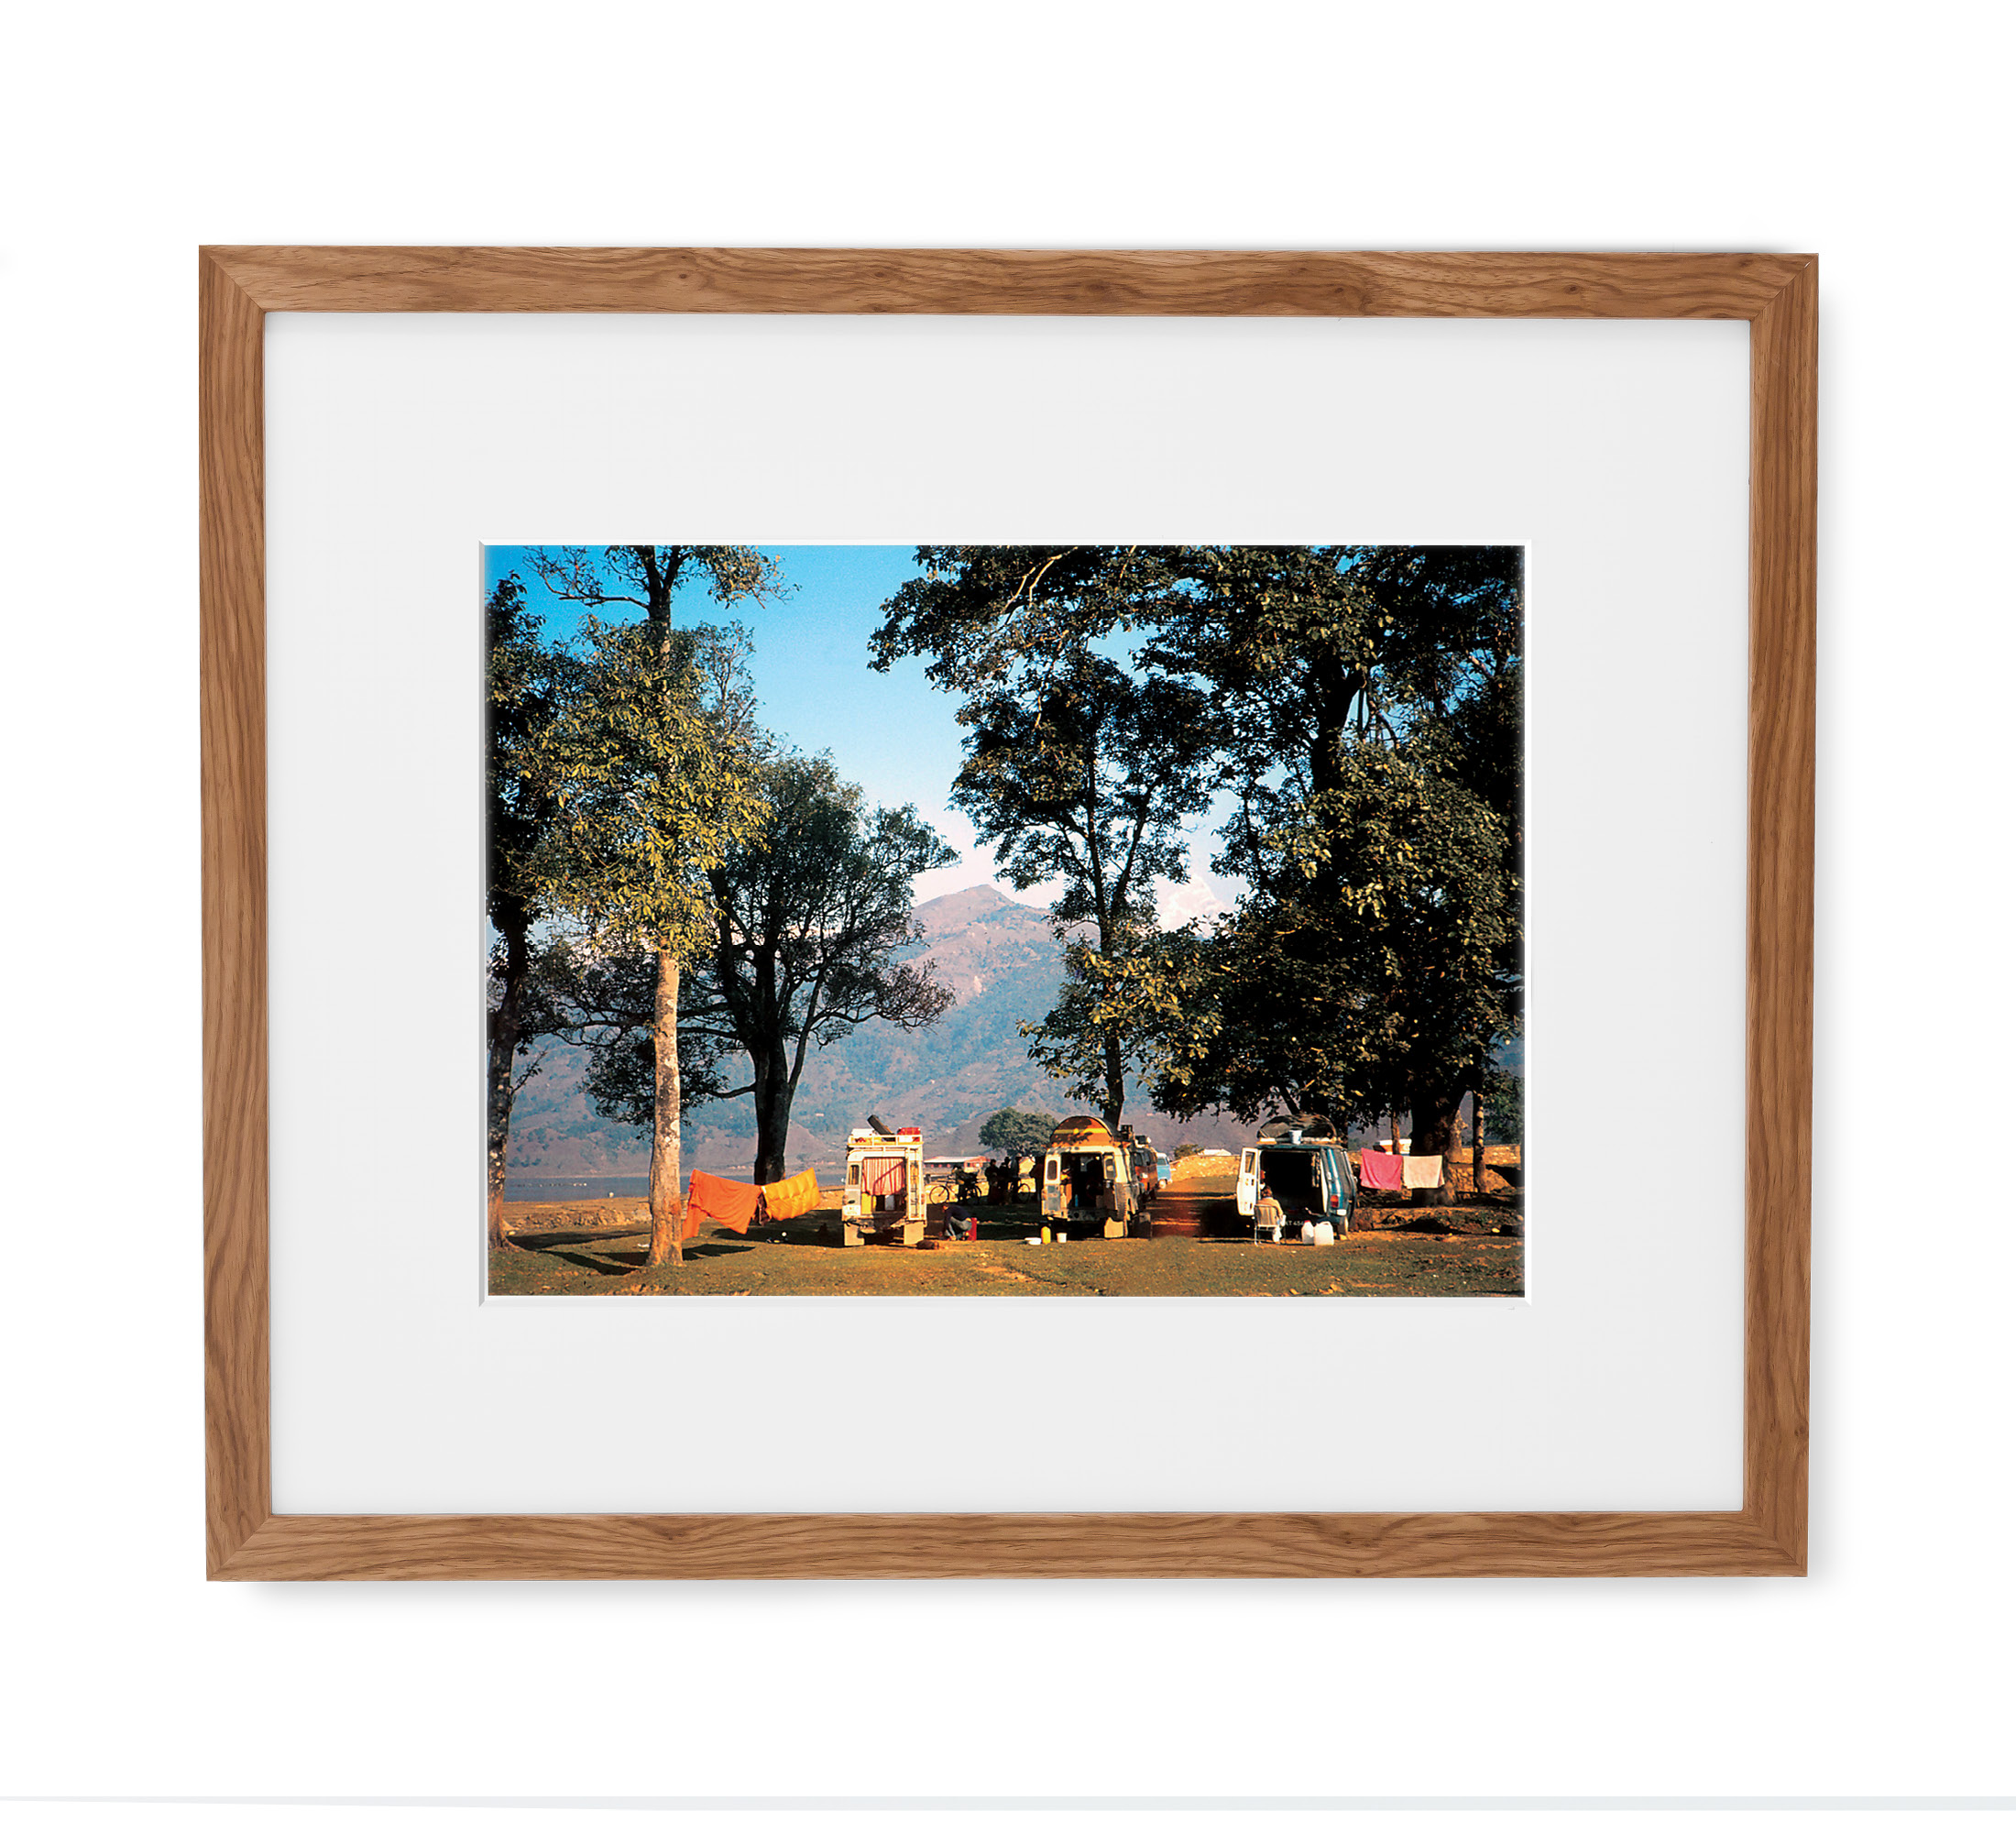 Himalayan Camp Framed Light Wood